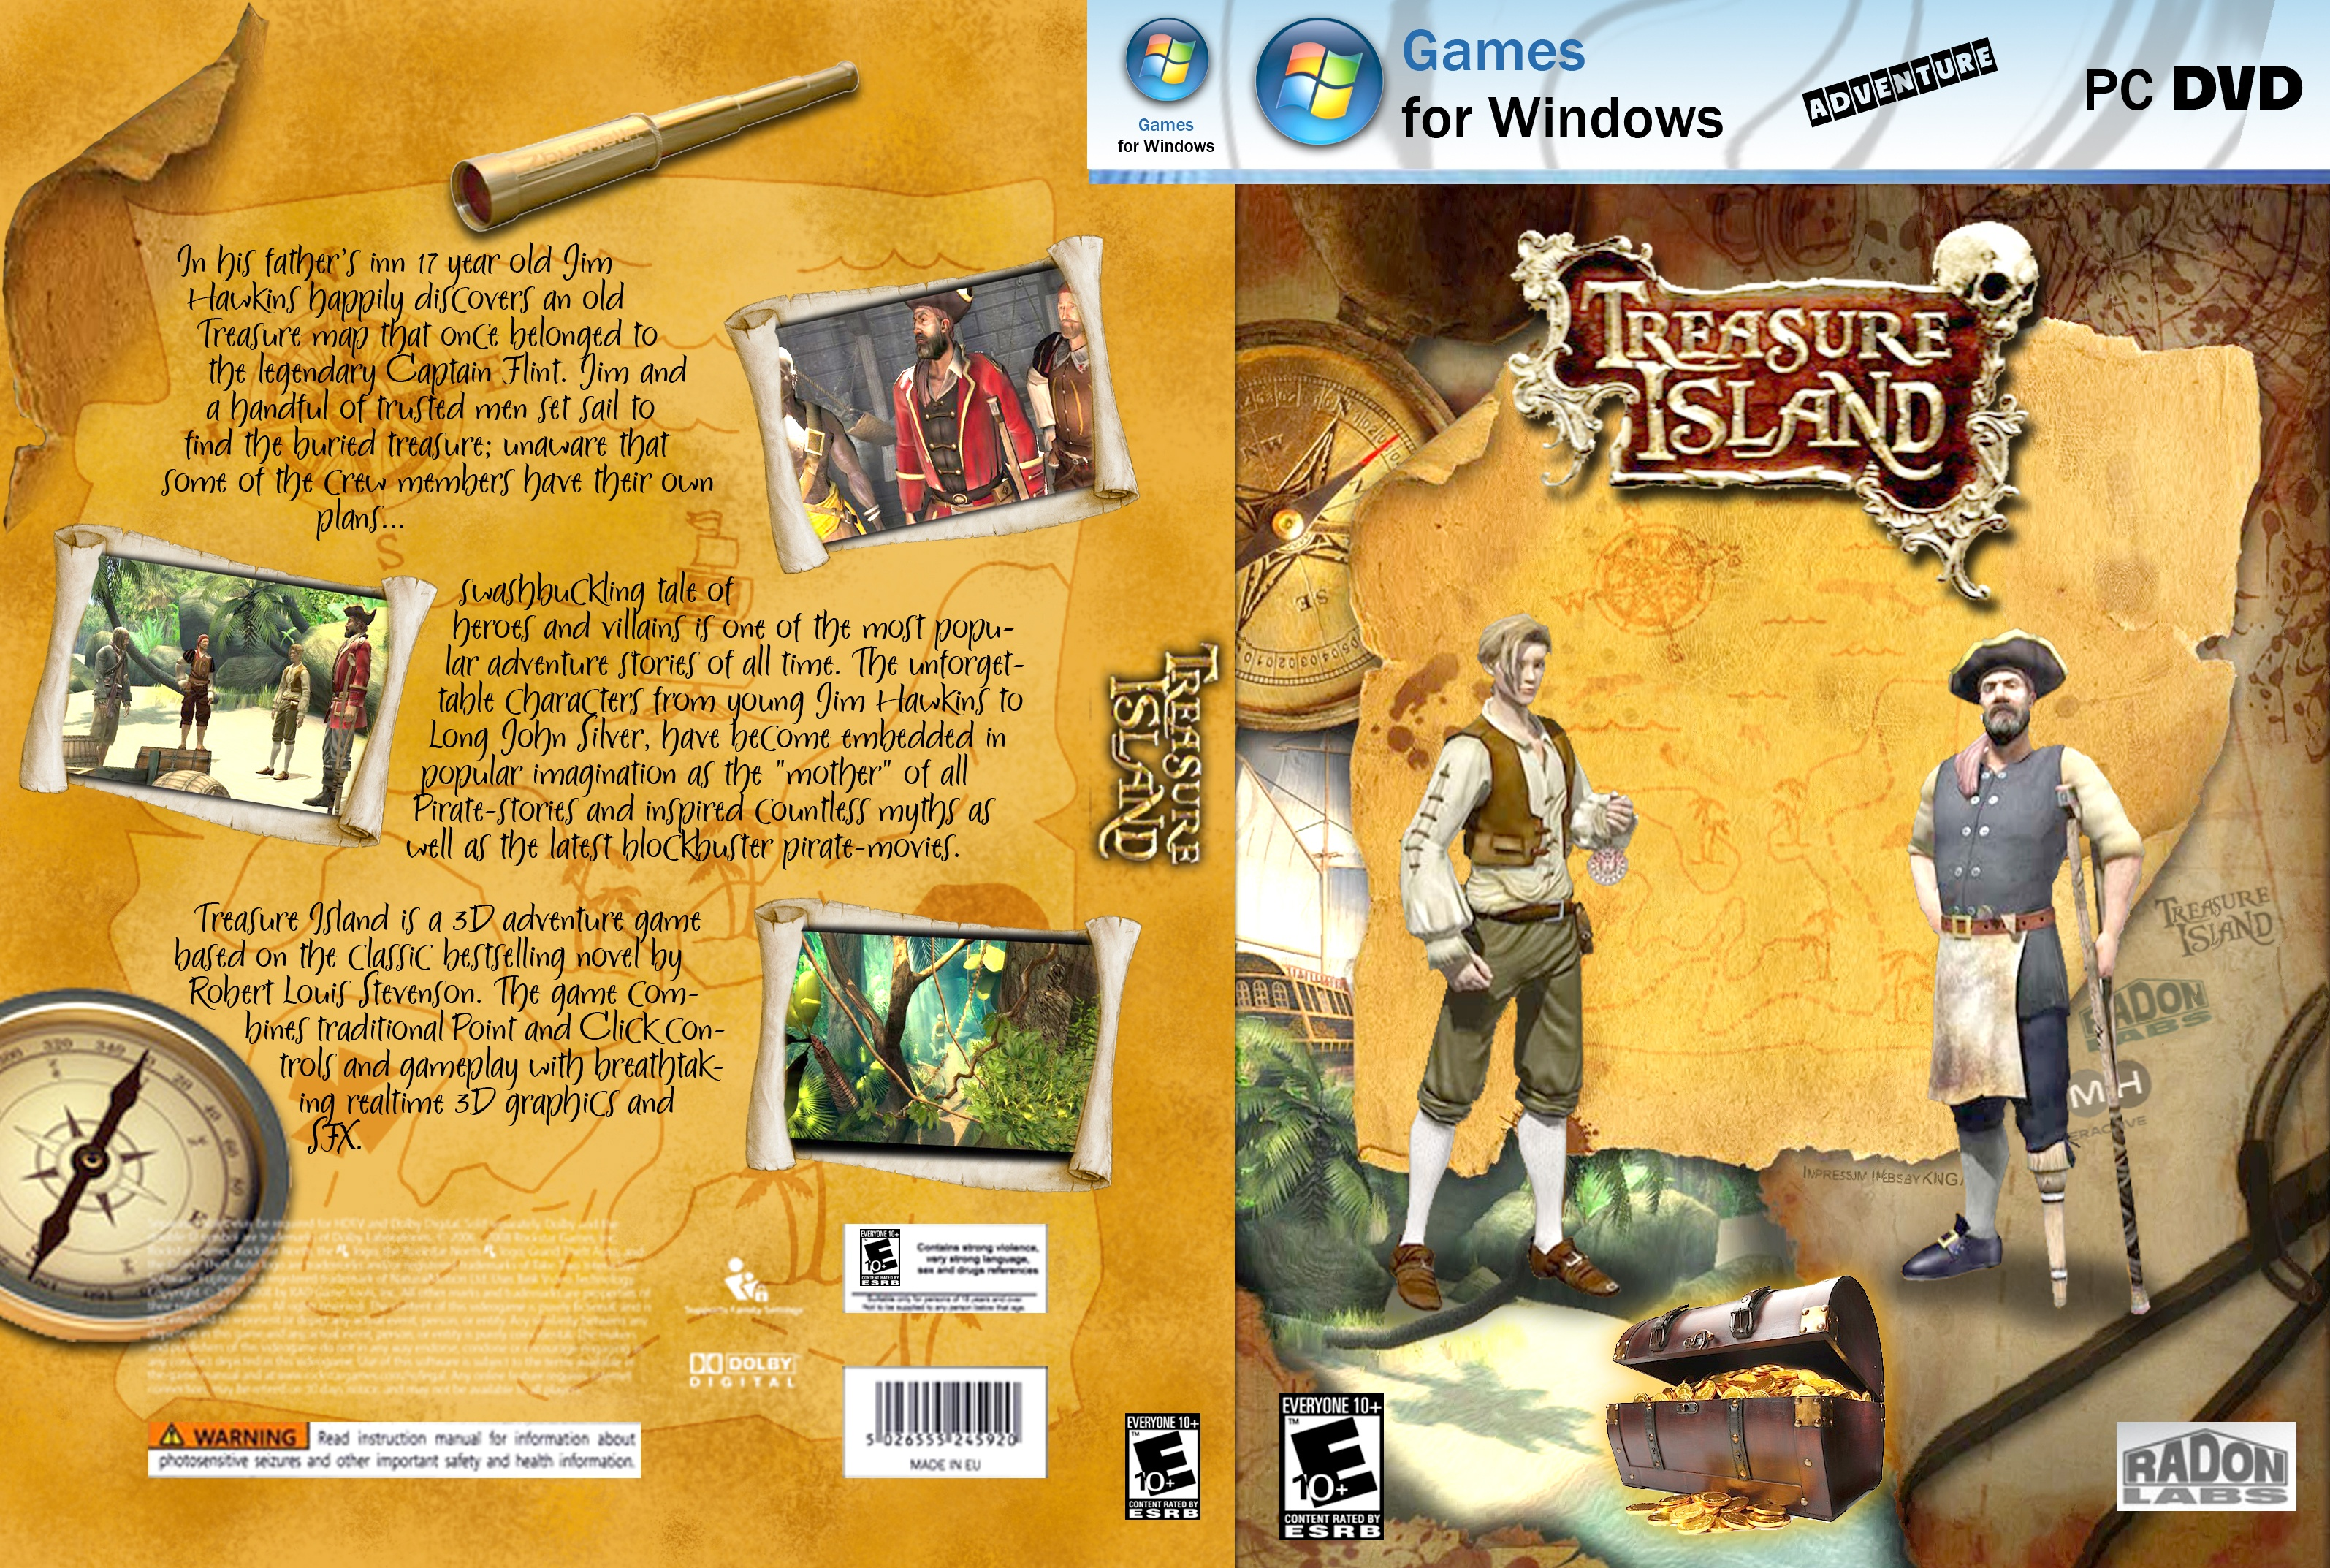 treasure island conflict of story Summary of treasure island treasure island by robert louis stevenson tells the story of jim, a young boy who watches over an inn in an english seaside town with his mother and his gravely ill.